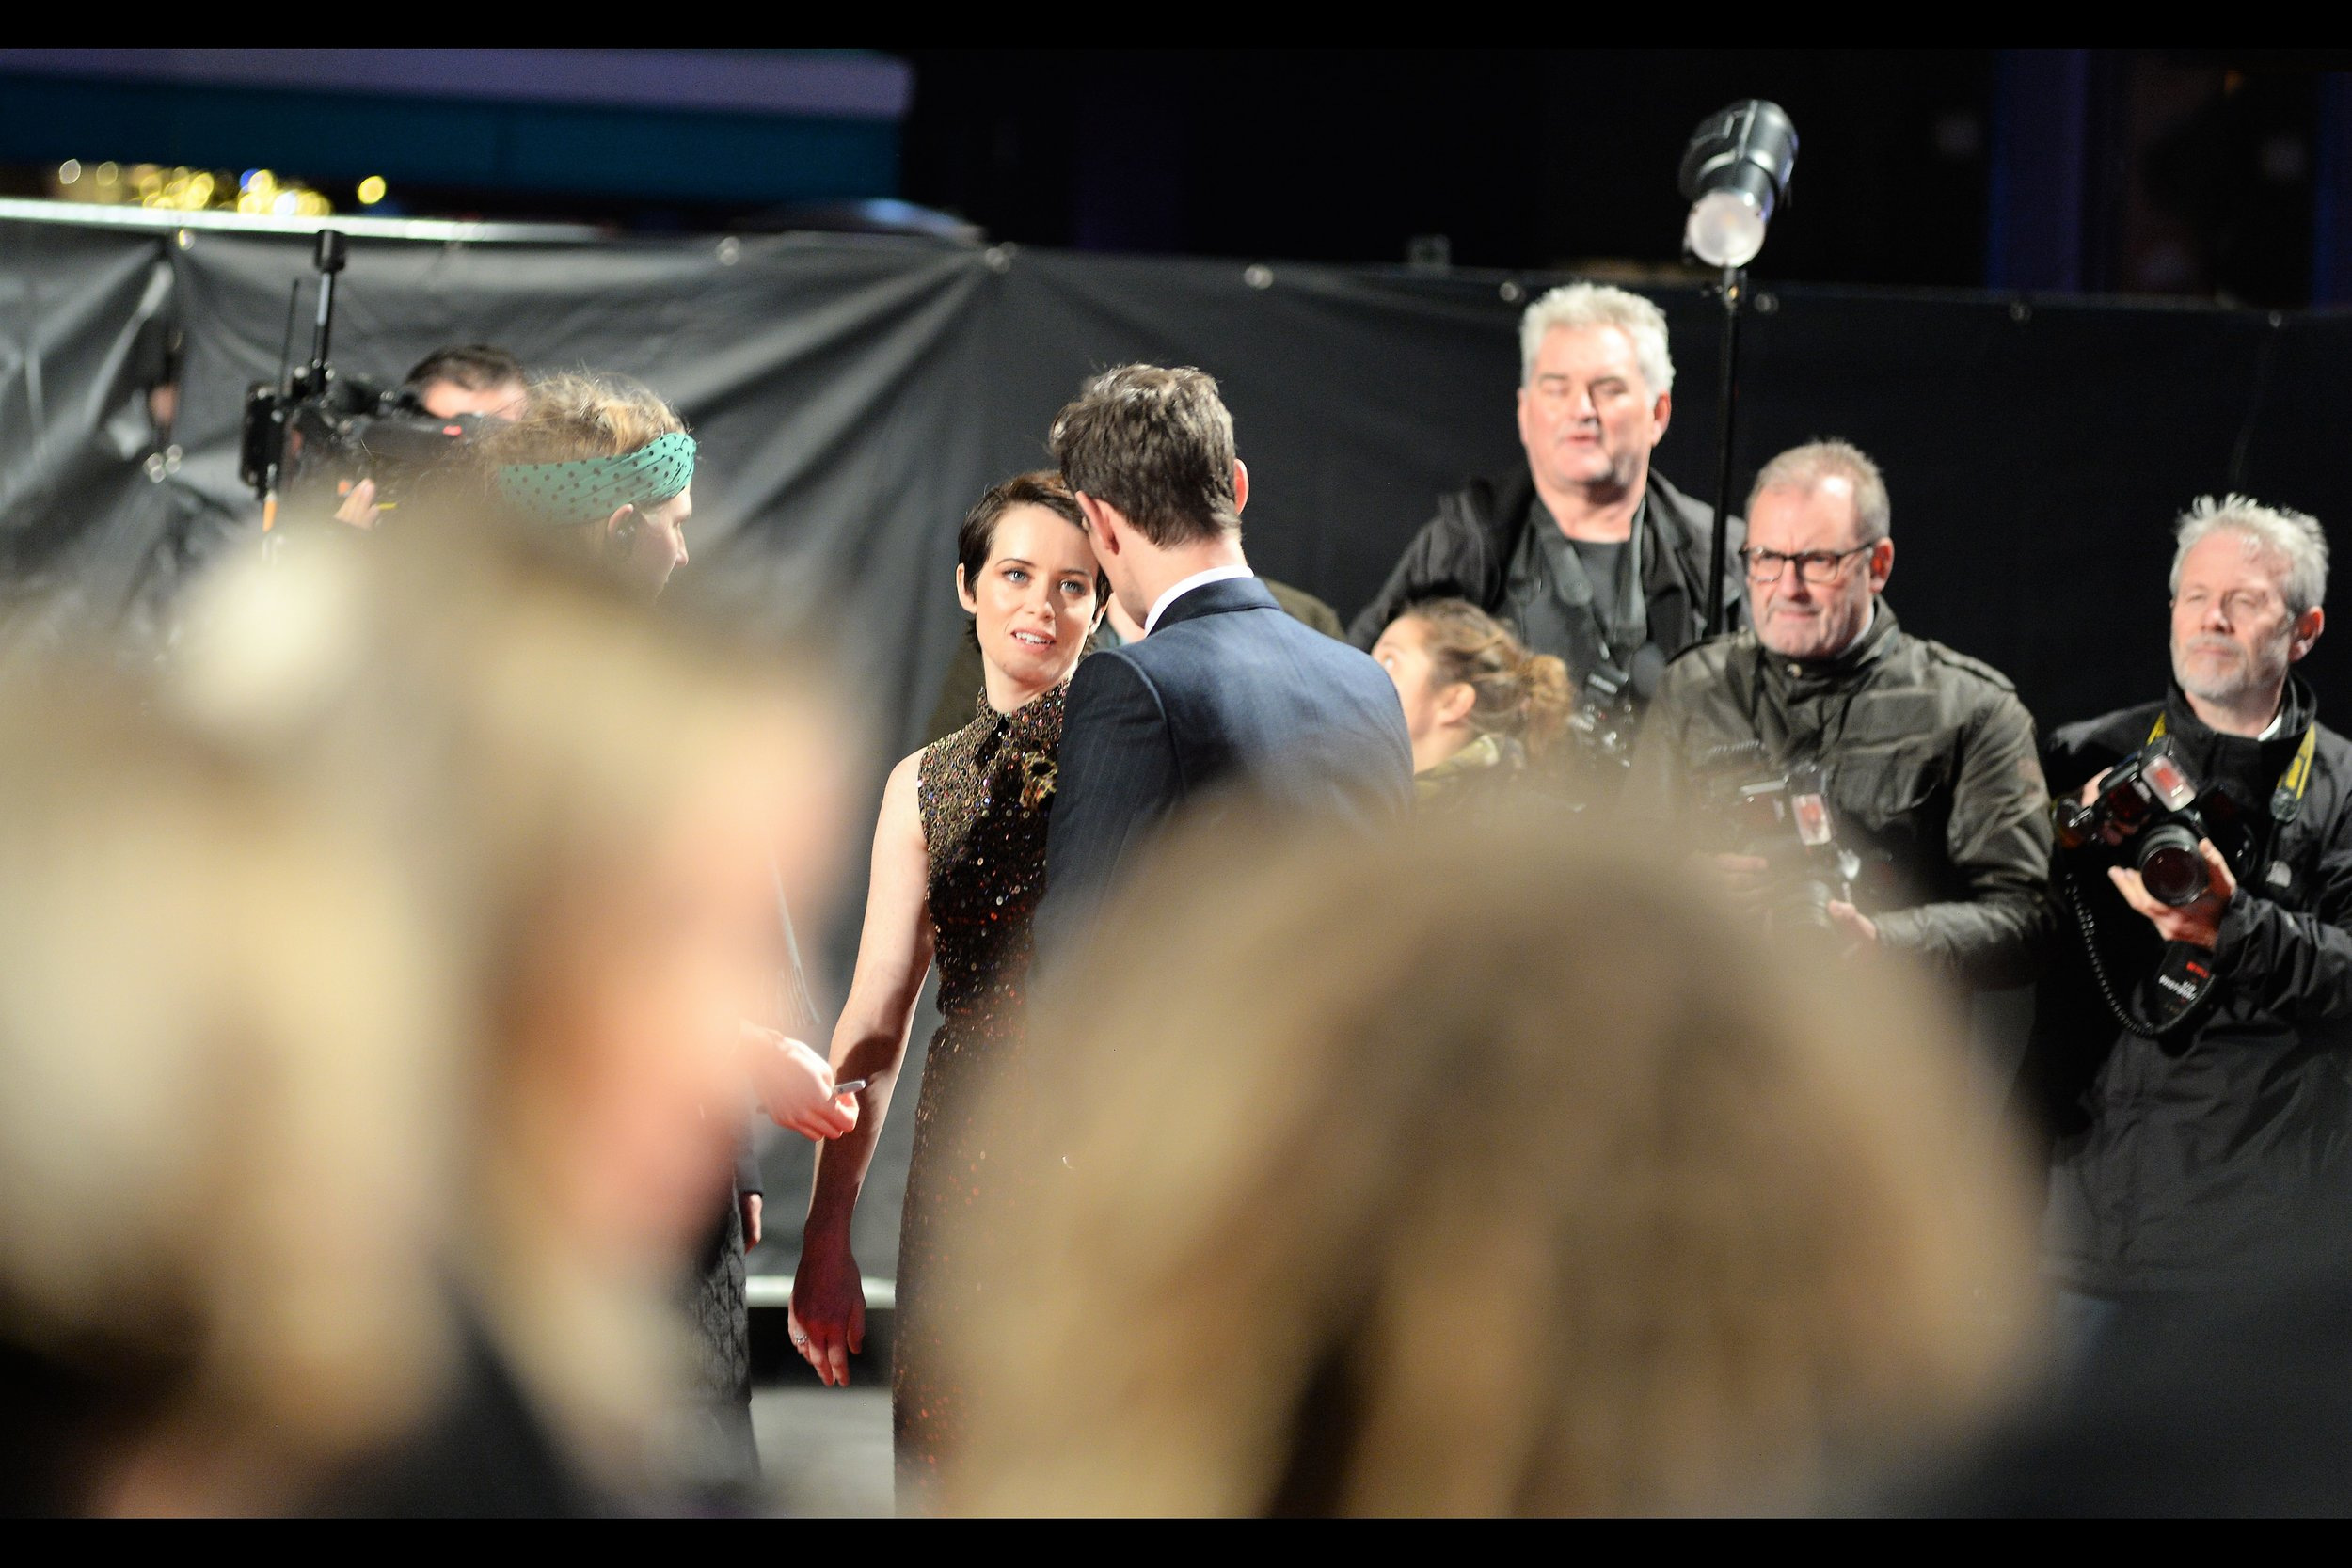 """""""You know... the Queen and Prince Philip wouldn't have listened, let alone followed, those guys' instructions. Can we go back again and ignore them?""""  - I most recently photographed Claire Foy at the   BFI LFF premiere of """"Breathe""""  , but she was also at the original   """"The Crown""""   premiere, wearing a dress that might passingly be called """"considerably more colourful"""""""